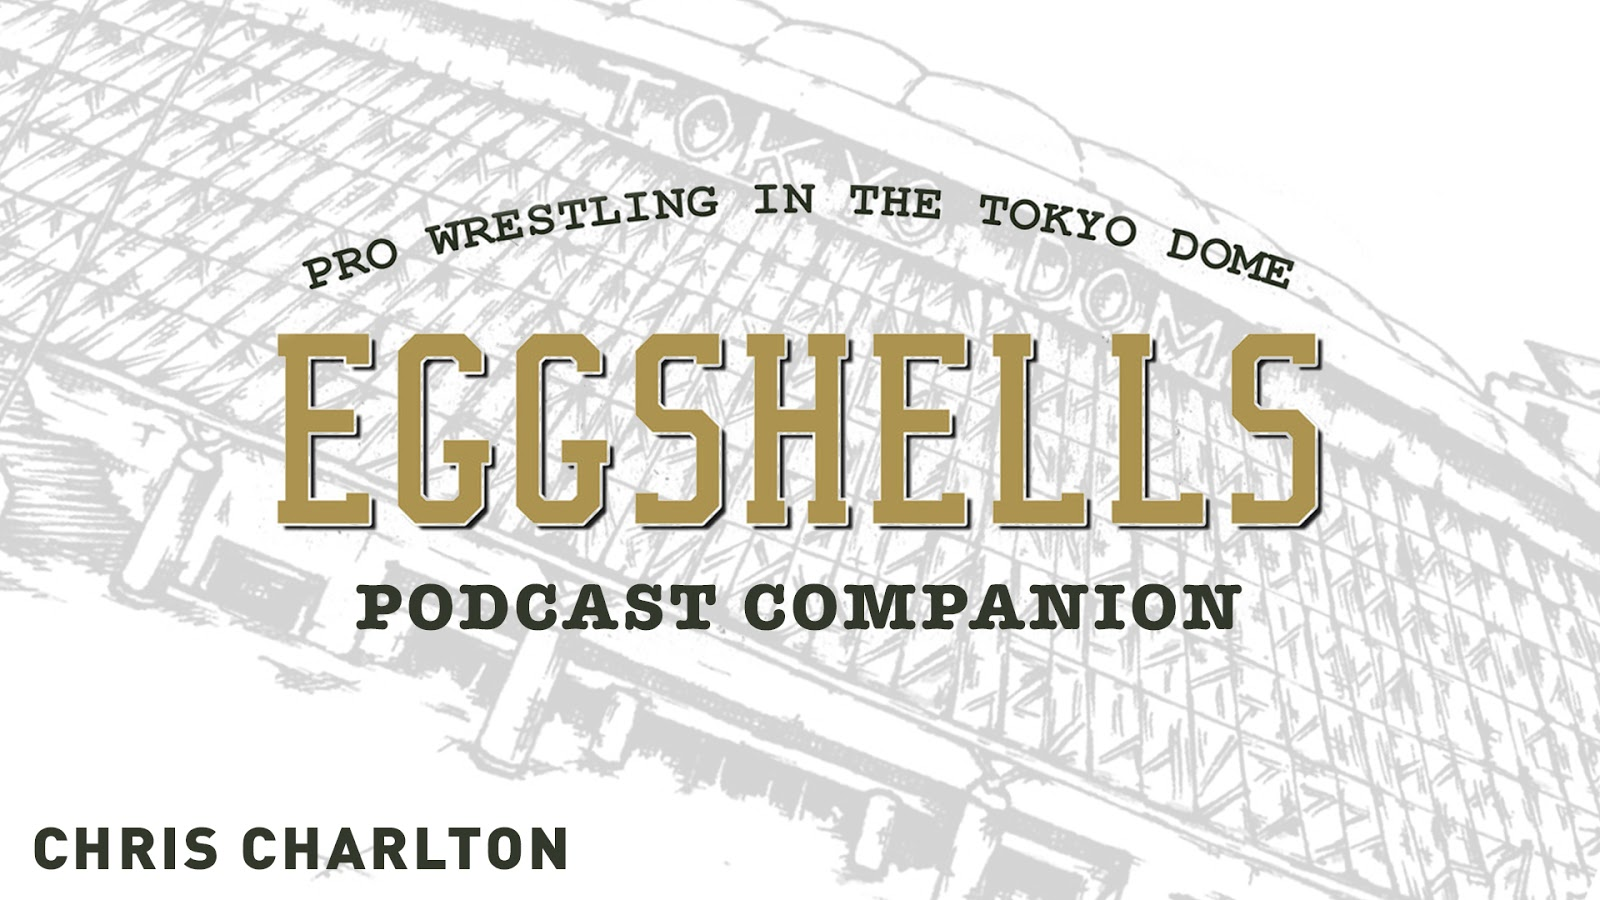 EGGSHELLS PODCAST COMPANION_quickedit.jpg